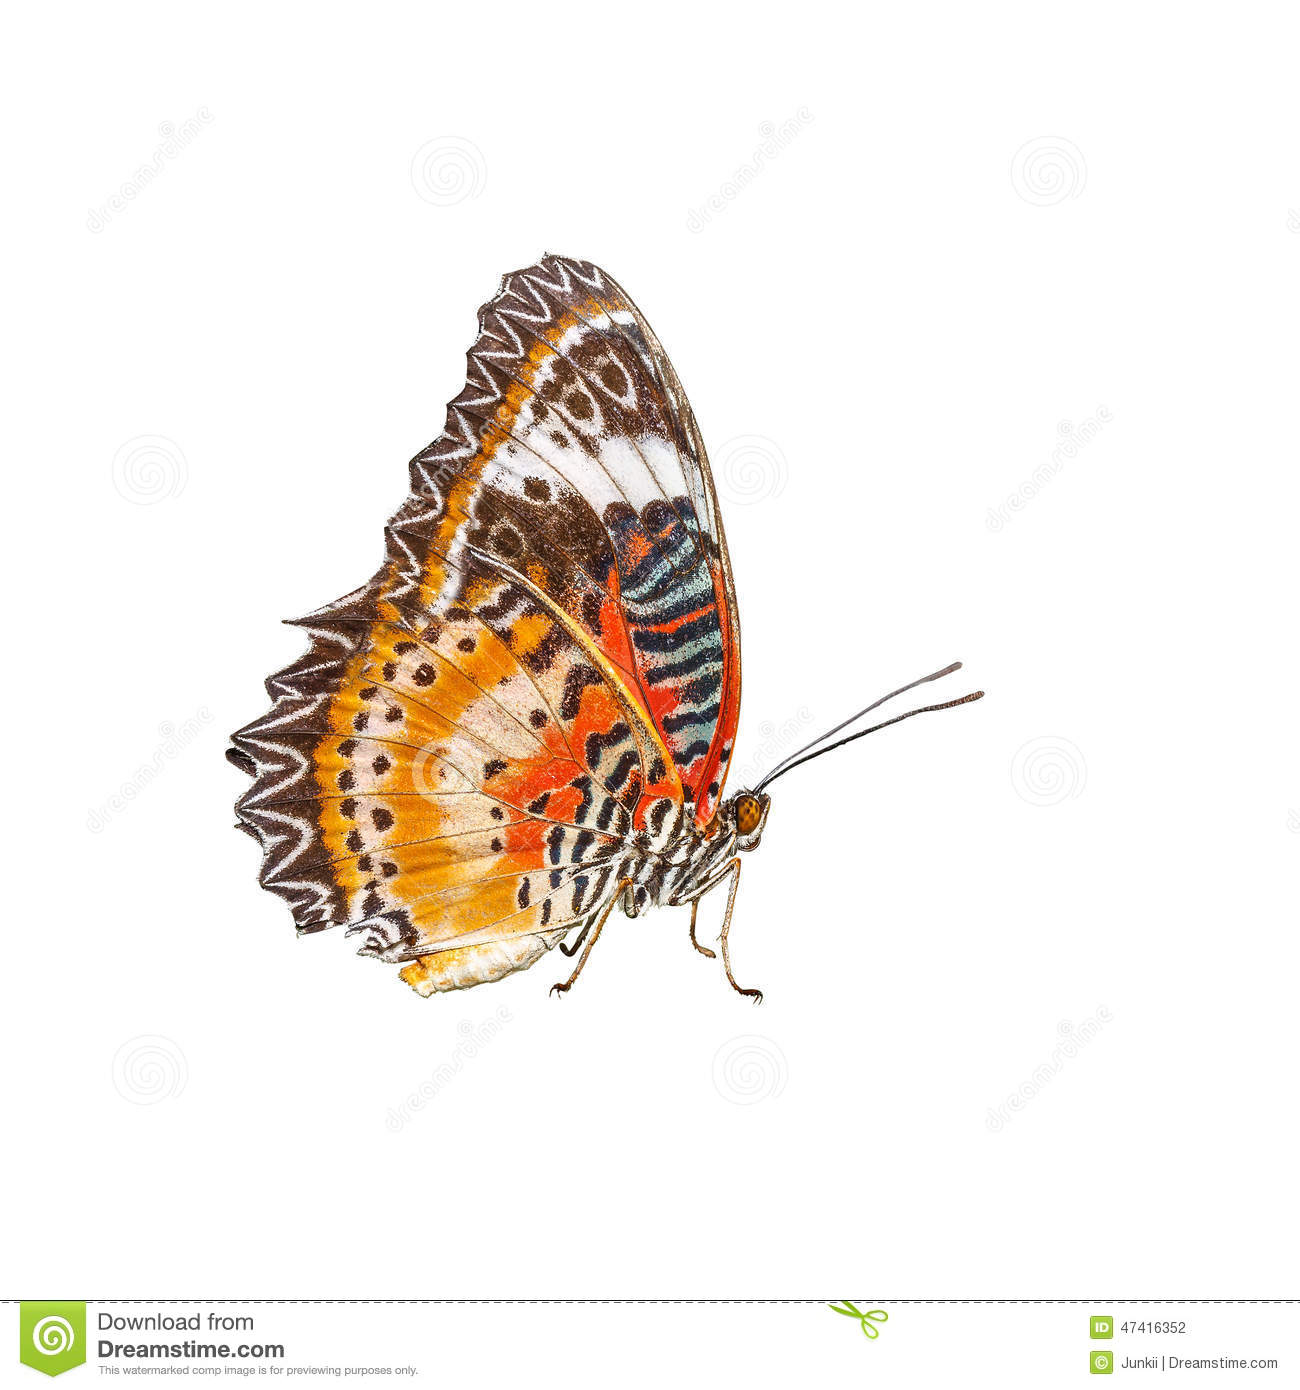 Leopard Lace Butterfly (Cethosia cyane) Isolated on White background